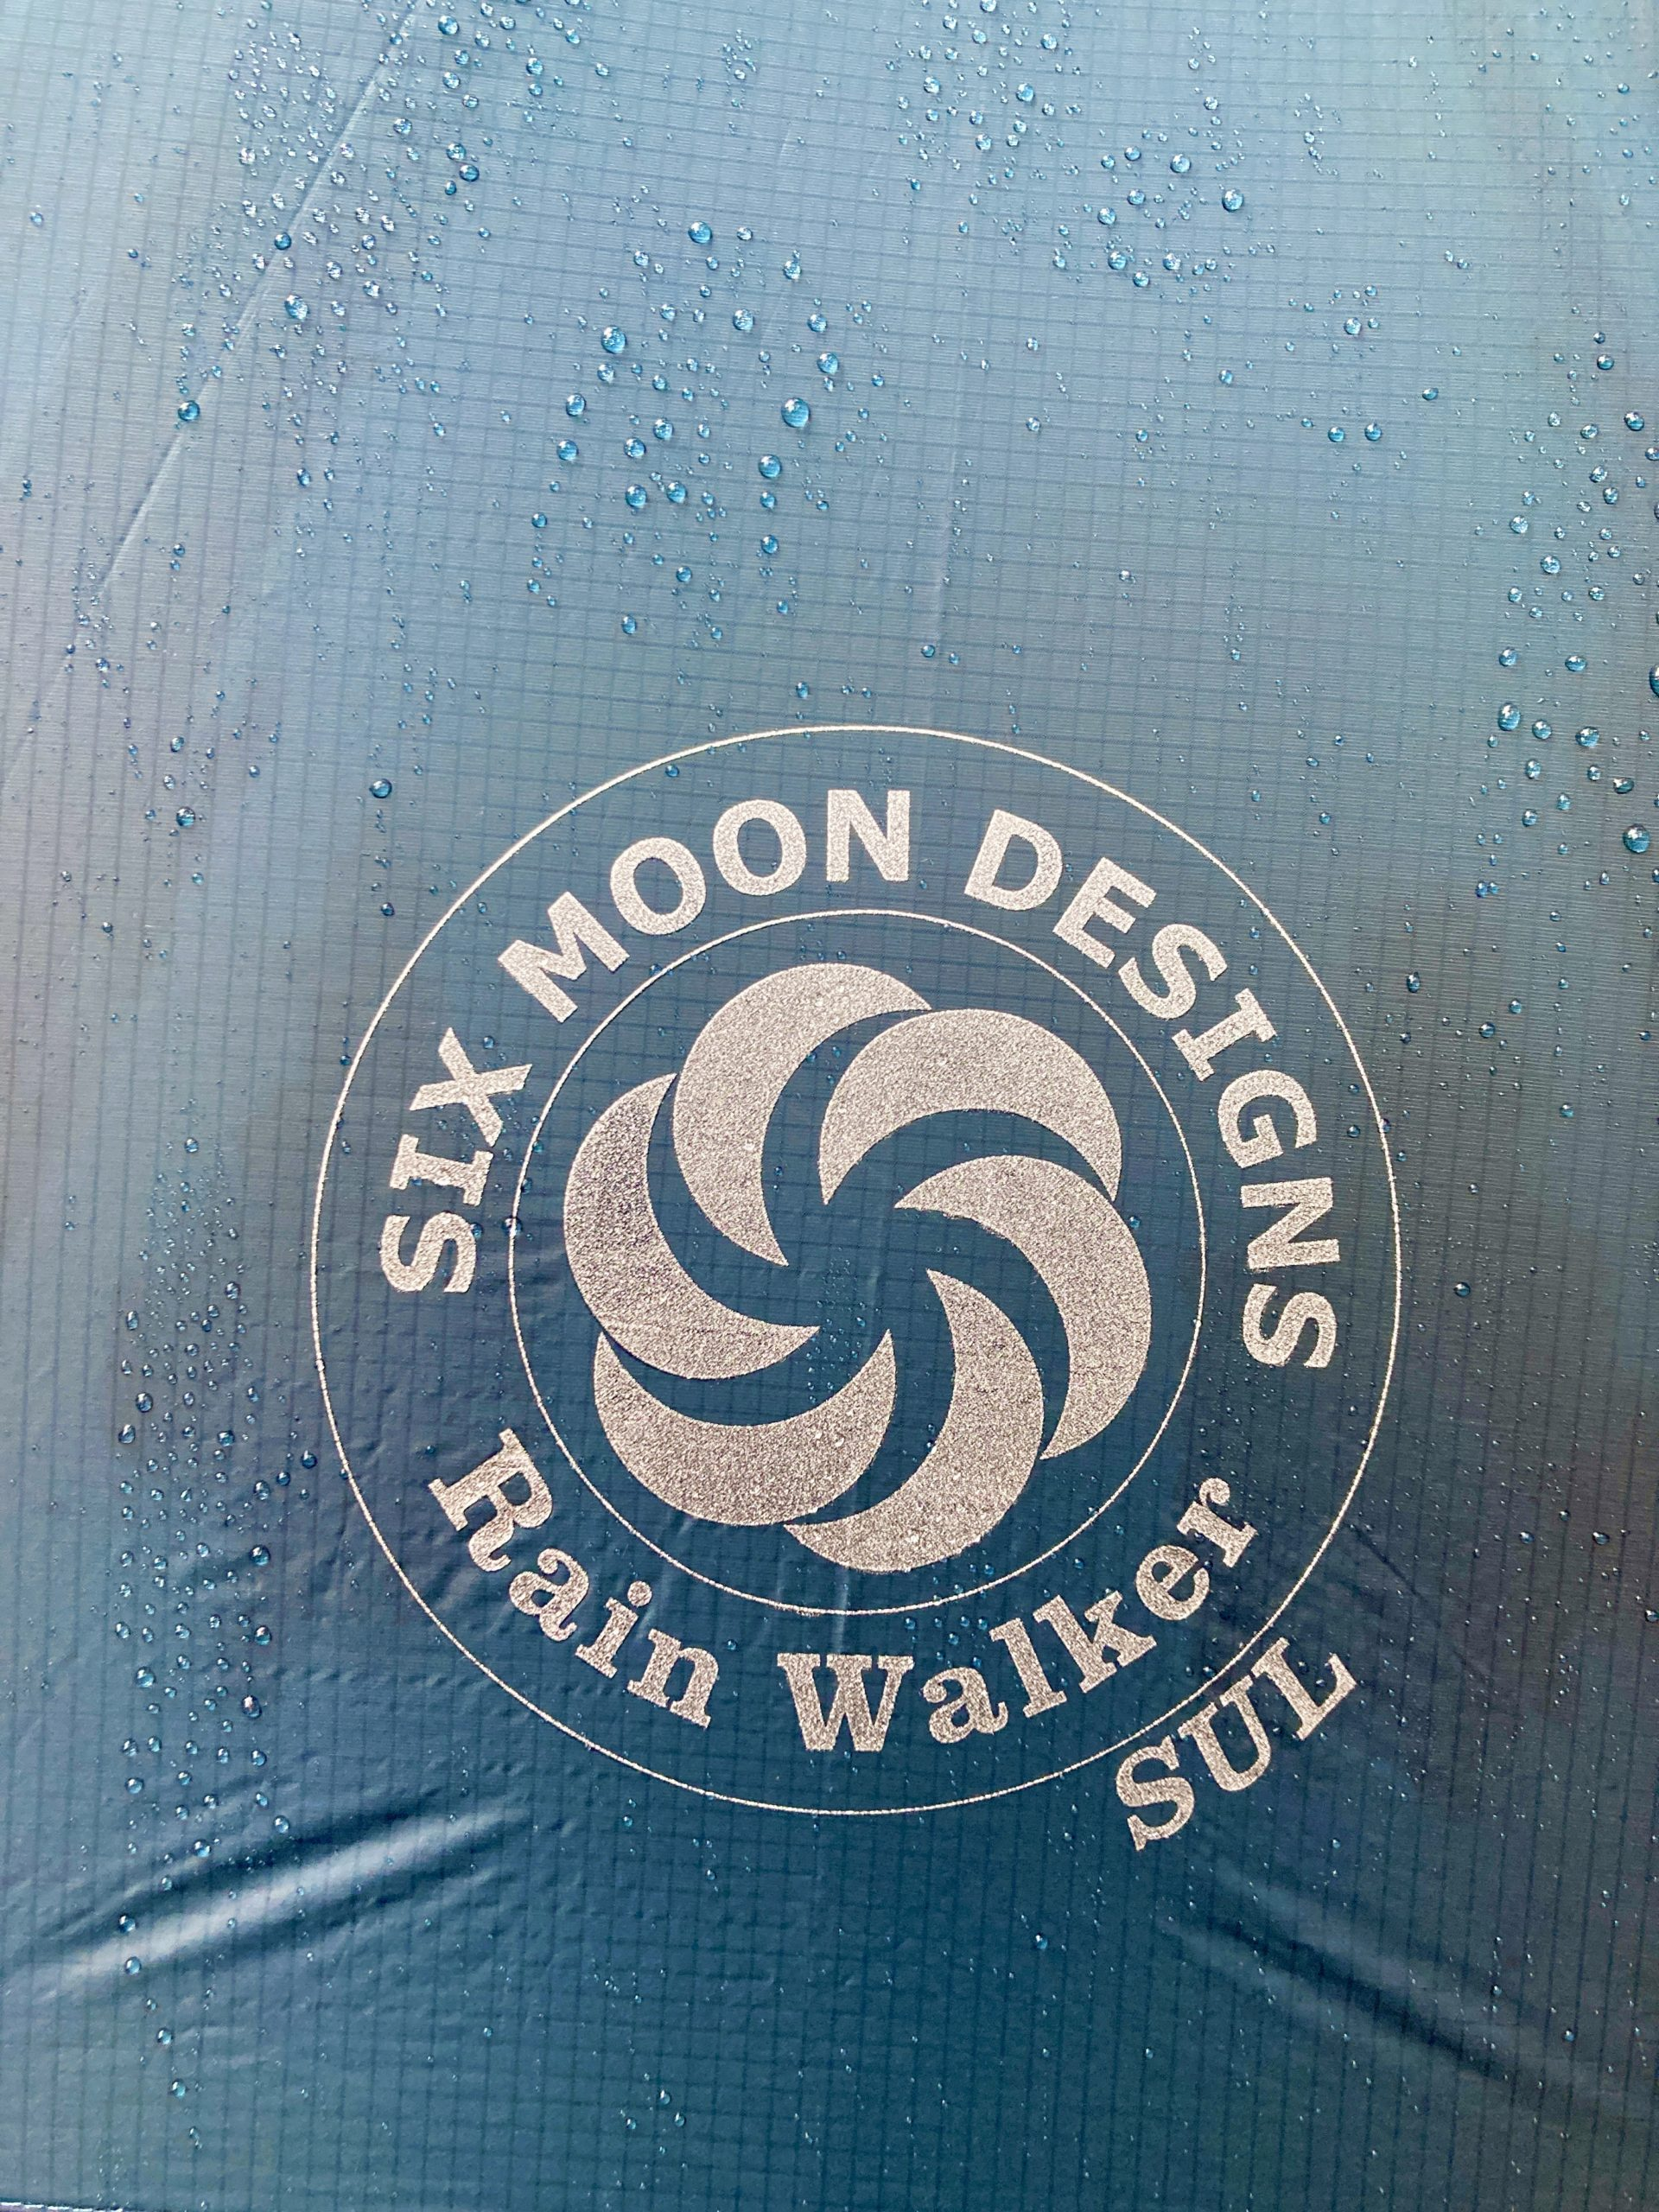 six moon designs rain walker sul umbrella